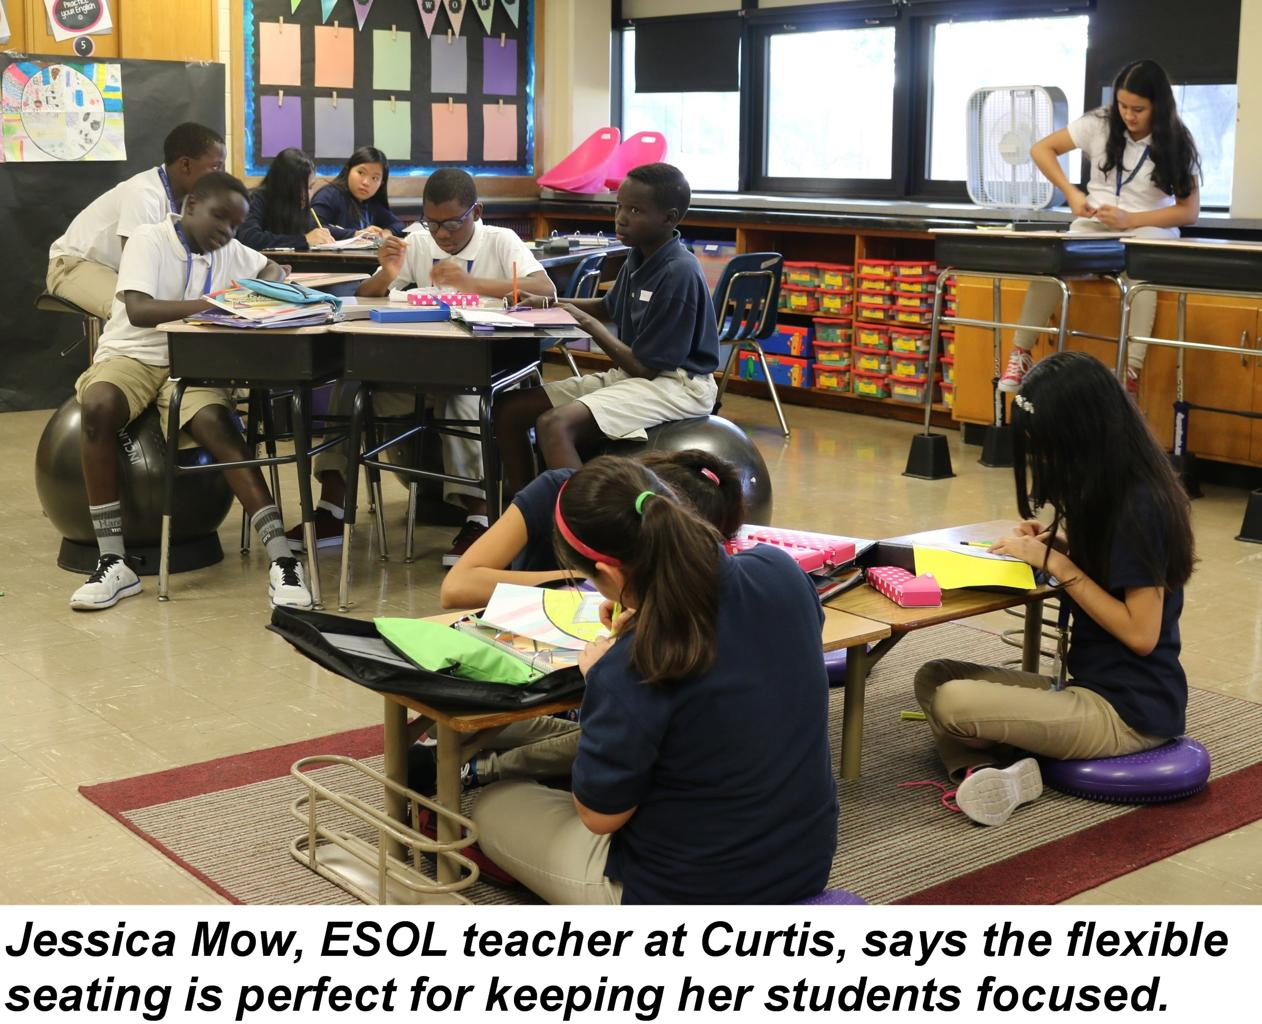 Many Classrooms Use Flexible Seating To Engage Students